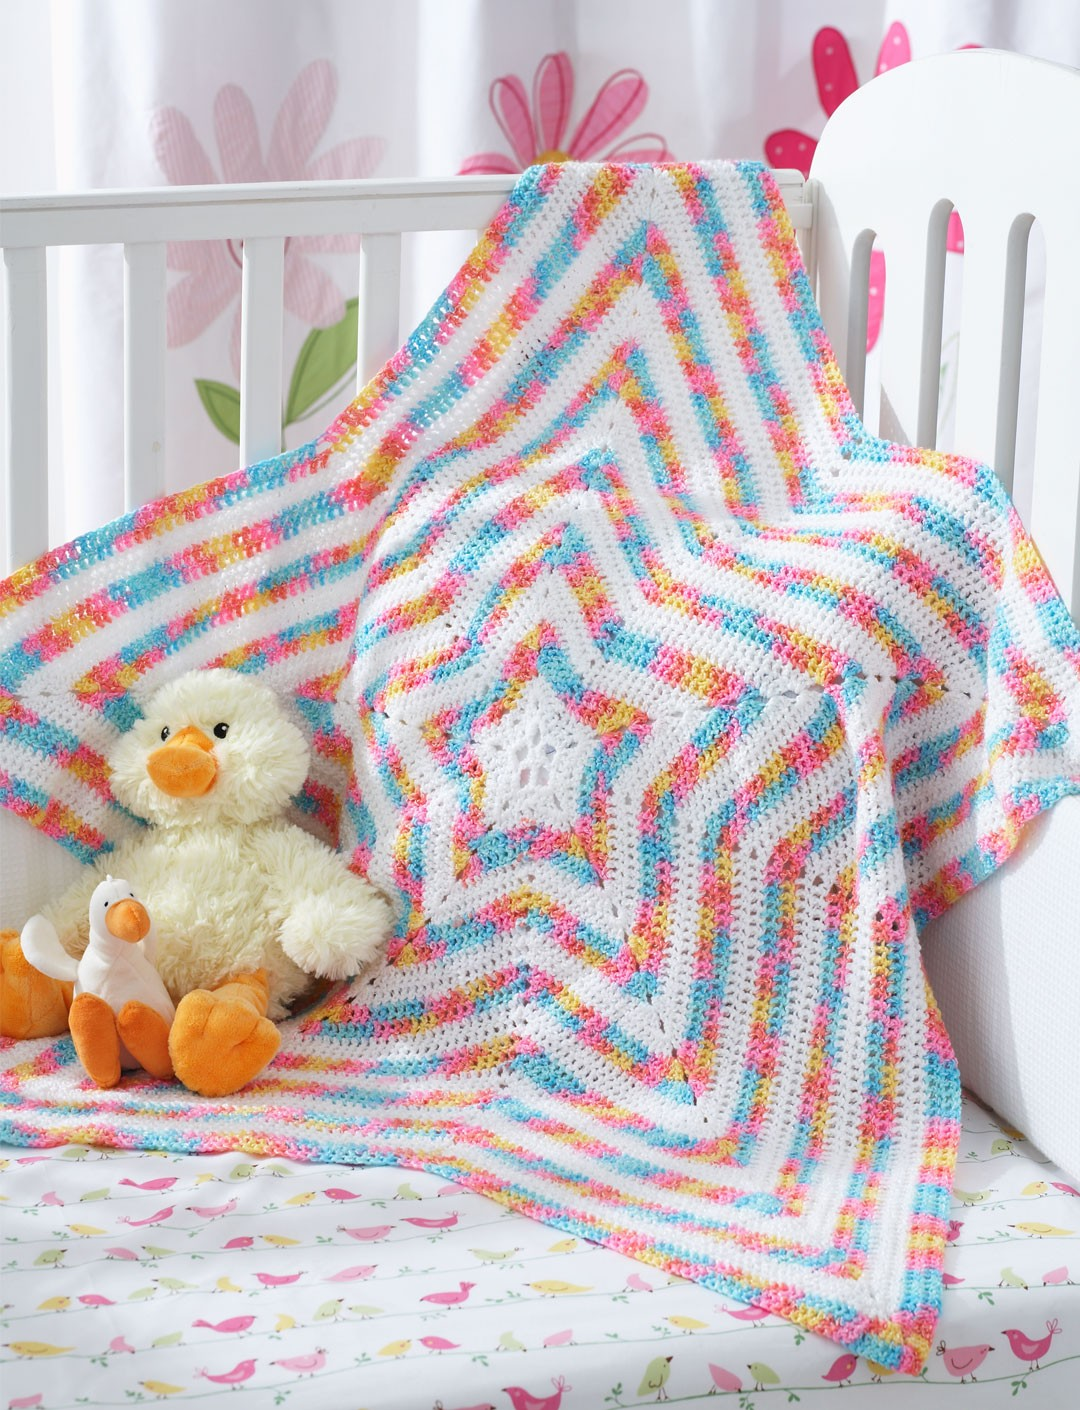 Star Baby Blanket Knitting Pattern : Bernat Star Blanket, Crochet Pattern Yarnspirations